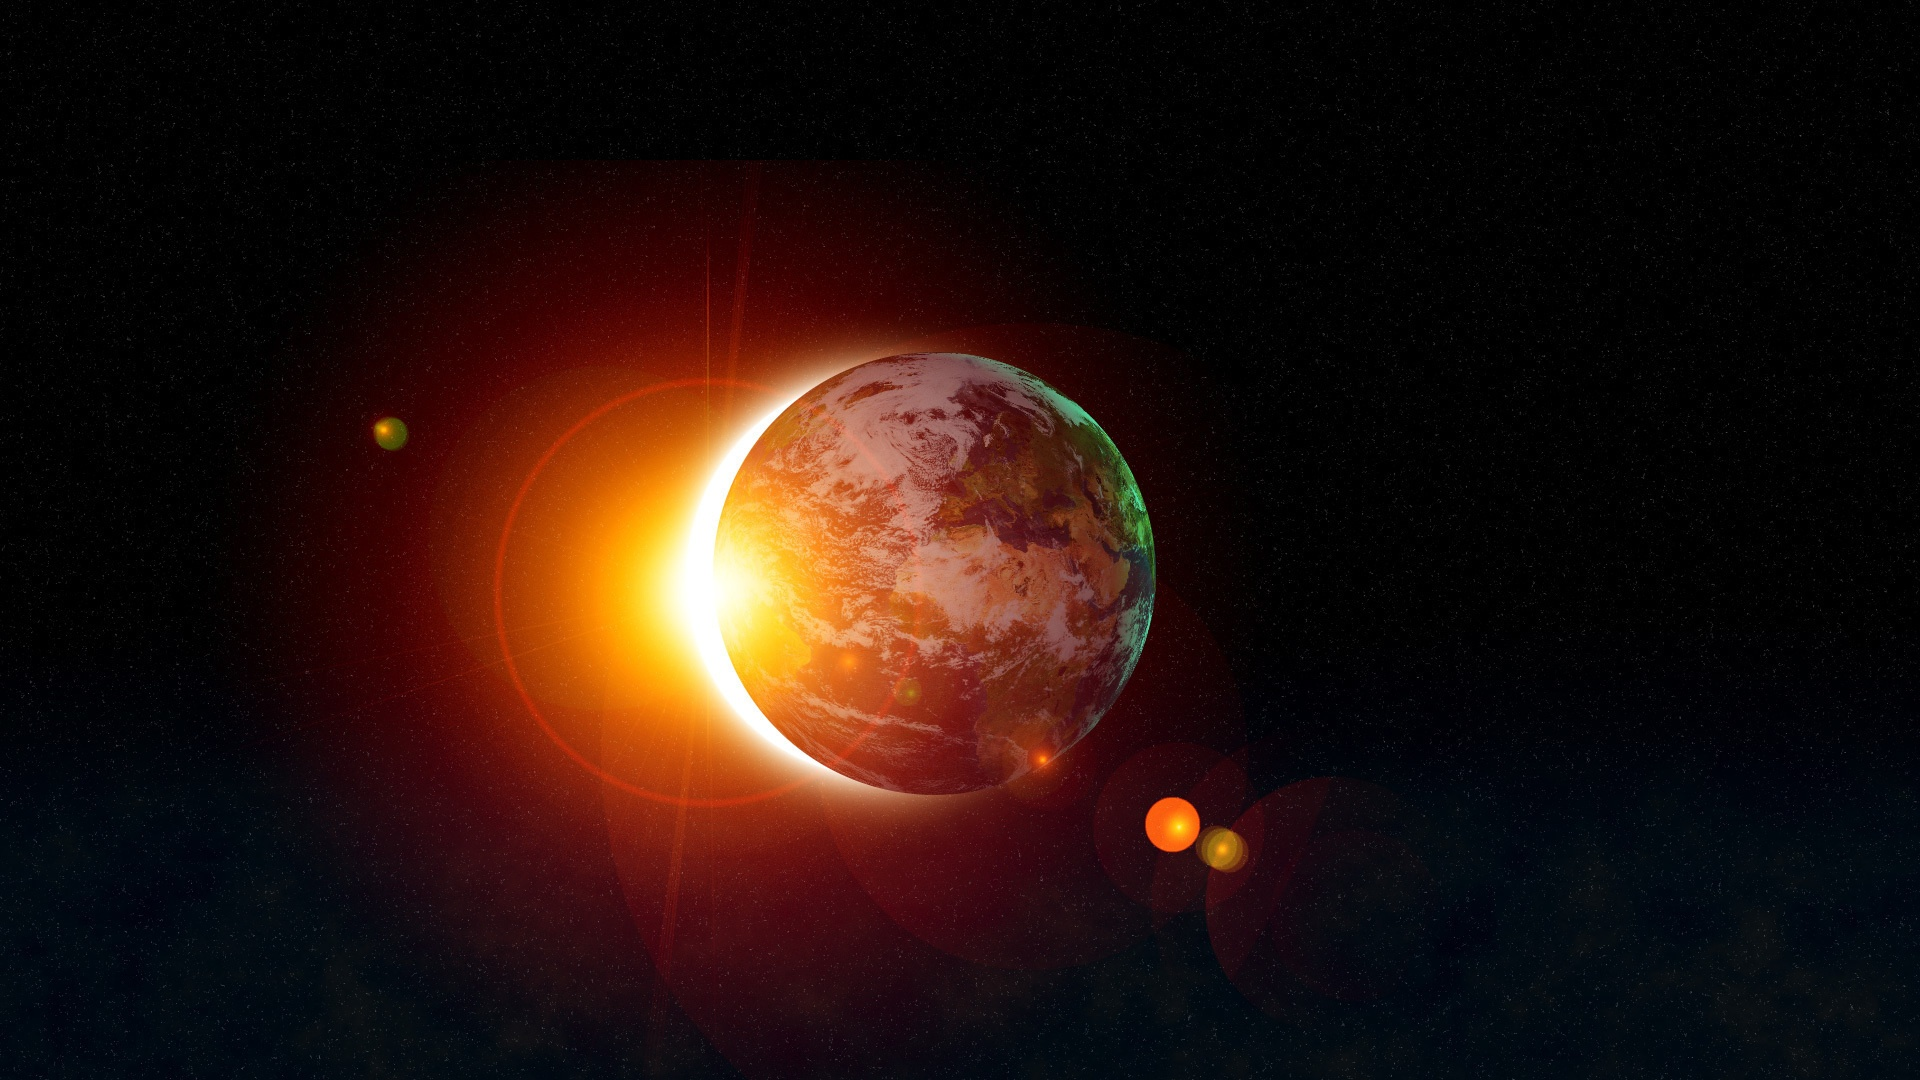 9 Awesome HD Solar Eclipse Wallpapers